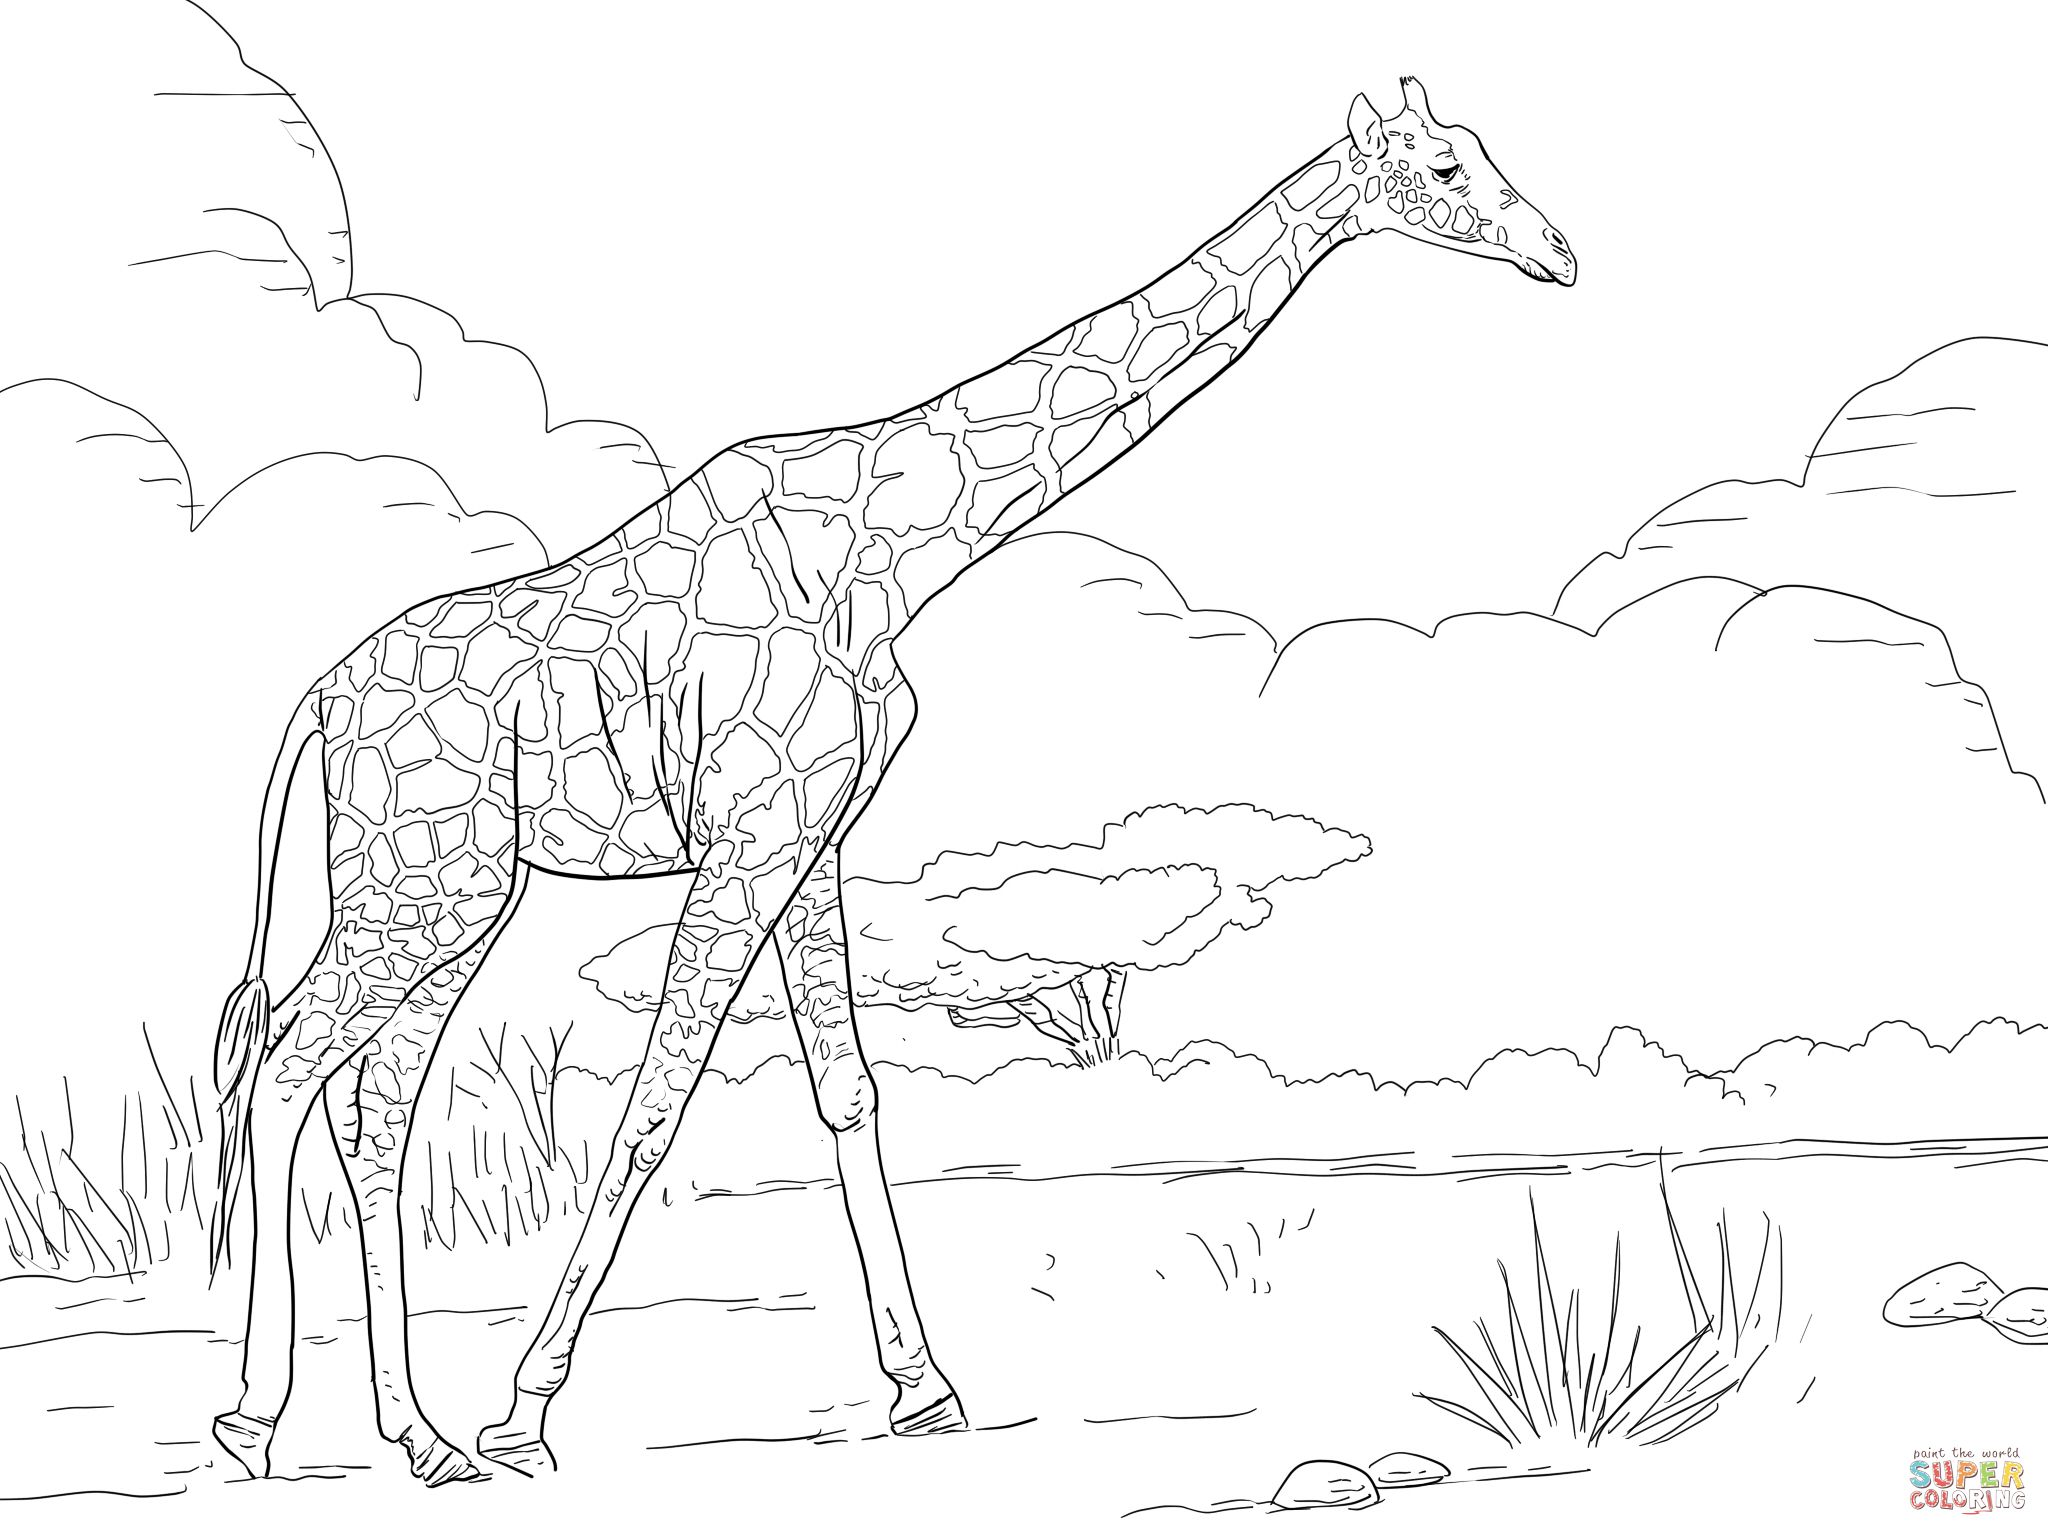 Coloring pages for adults giraffe - Reticulated Giraffe Coloring Page Free Printable Coloring Pages